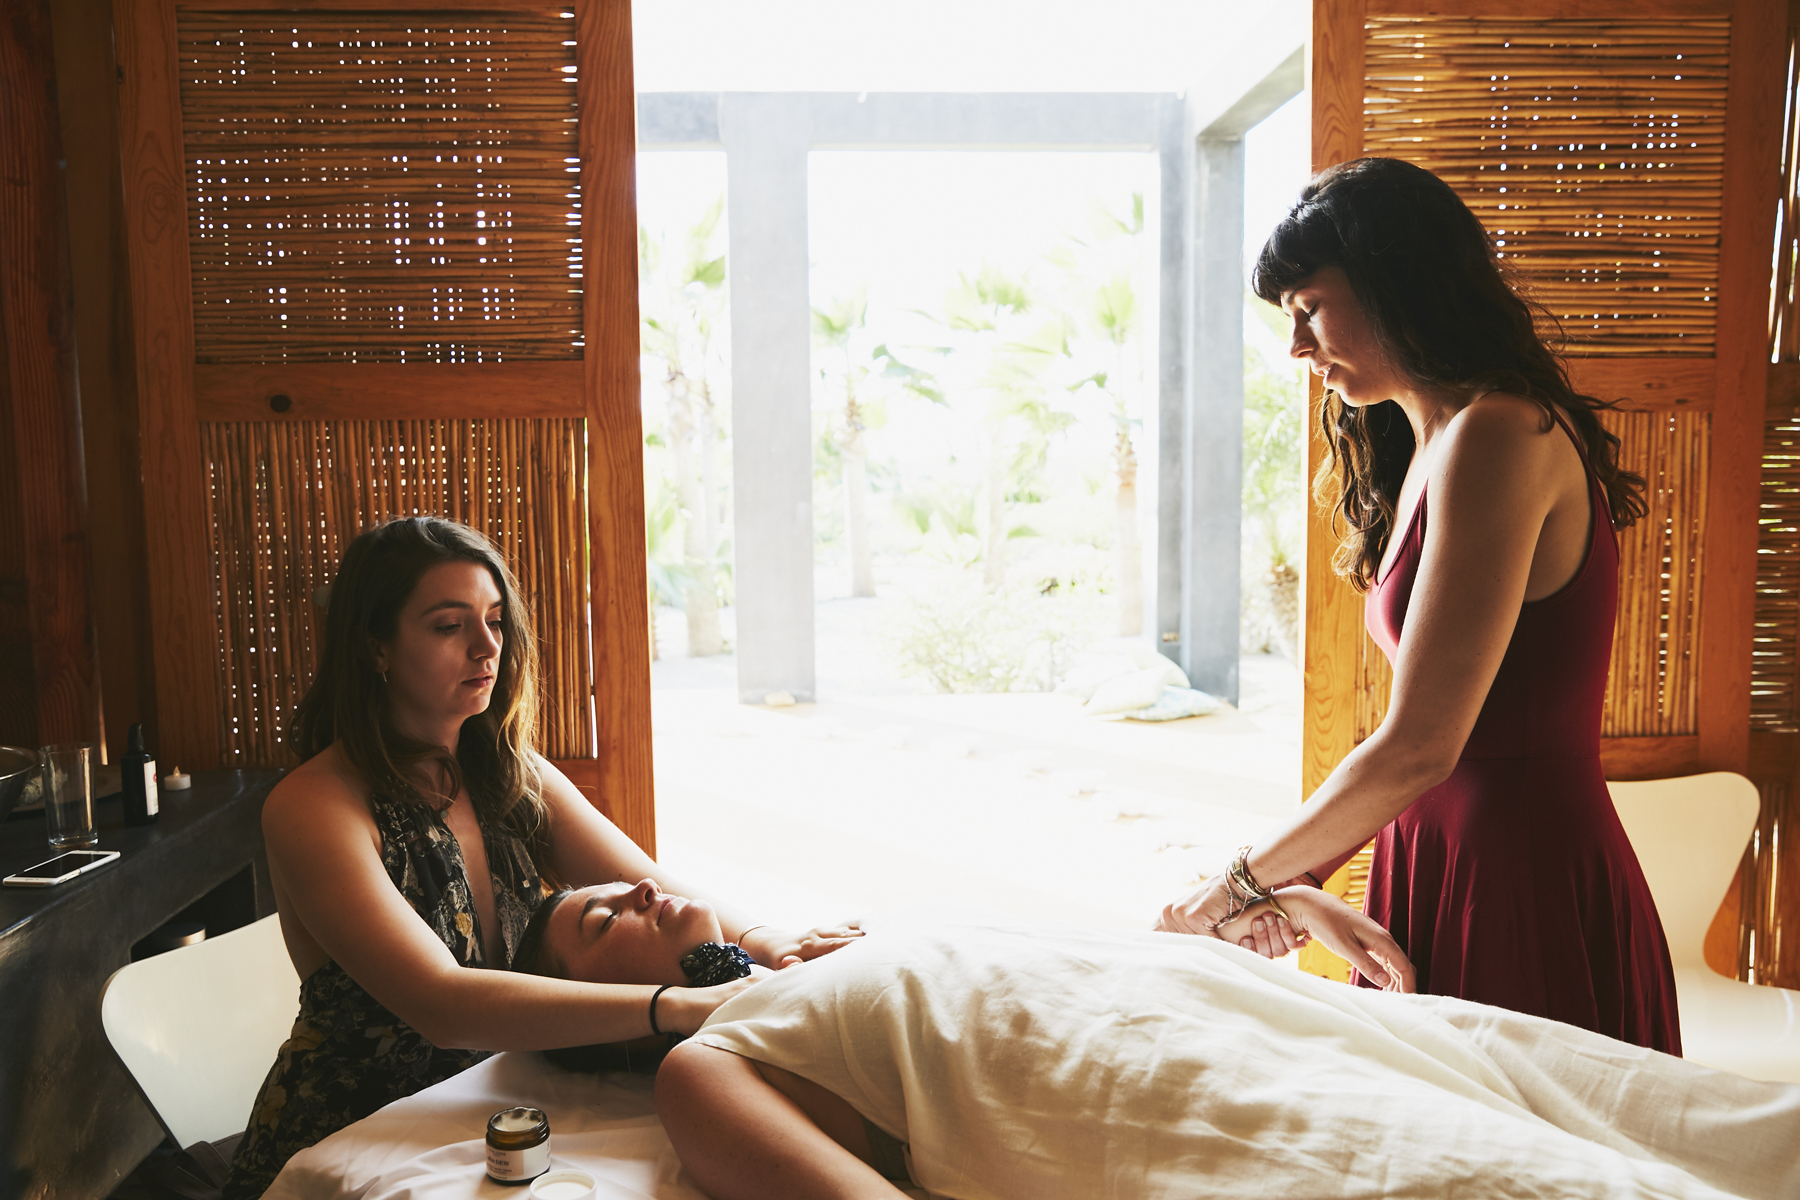 A dreamy scene captured by @Jillian Guyette for FP. The Pachamama spa is GOALS!